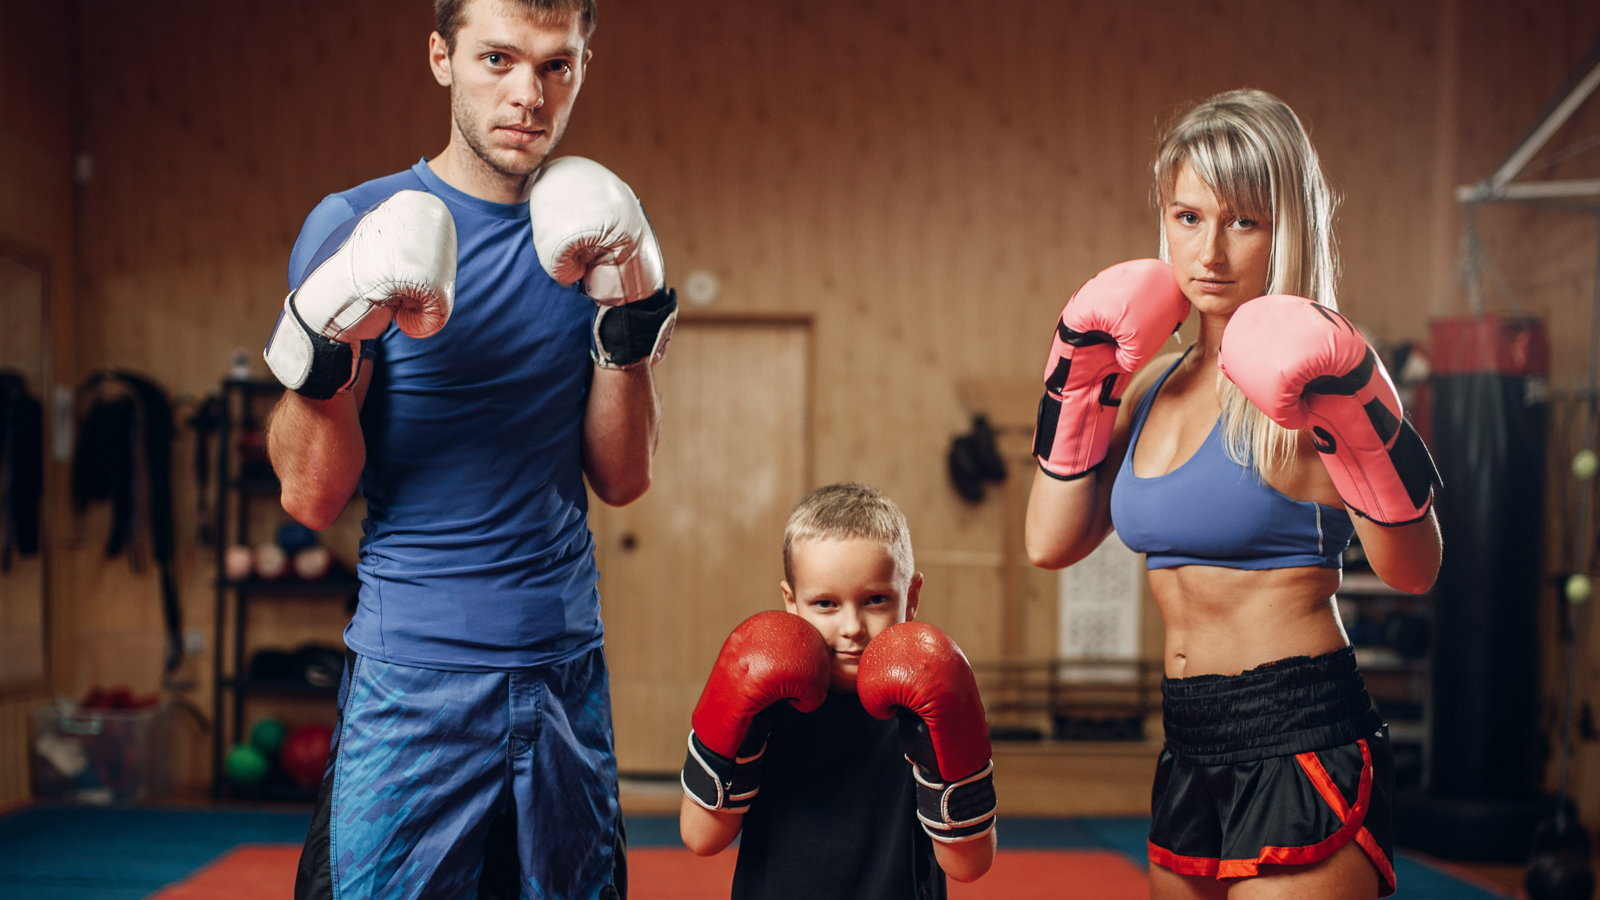 family doing kickboxing